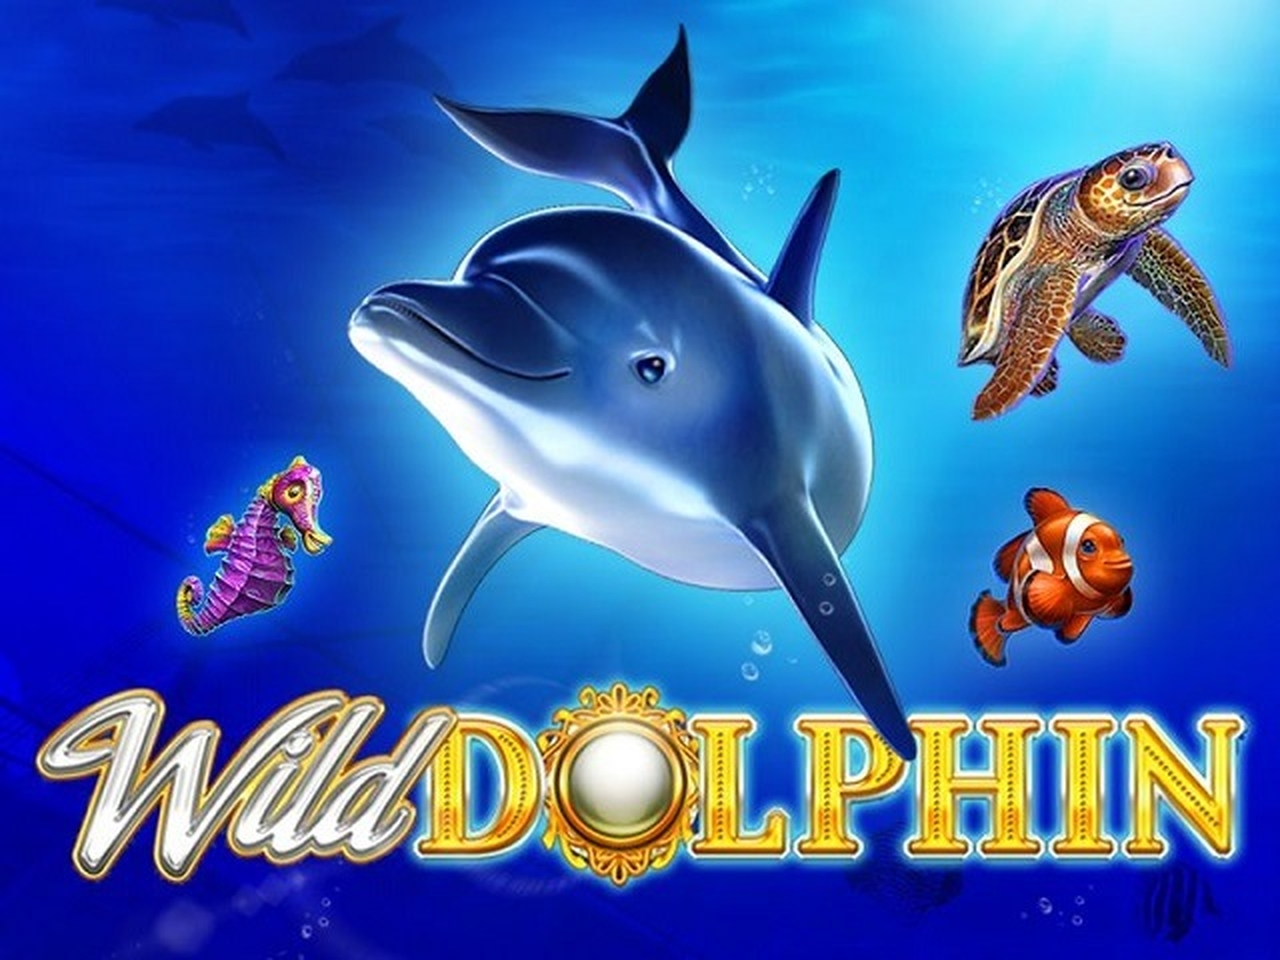 The Wild Dolphin Online Slot Demo Game by GameArt